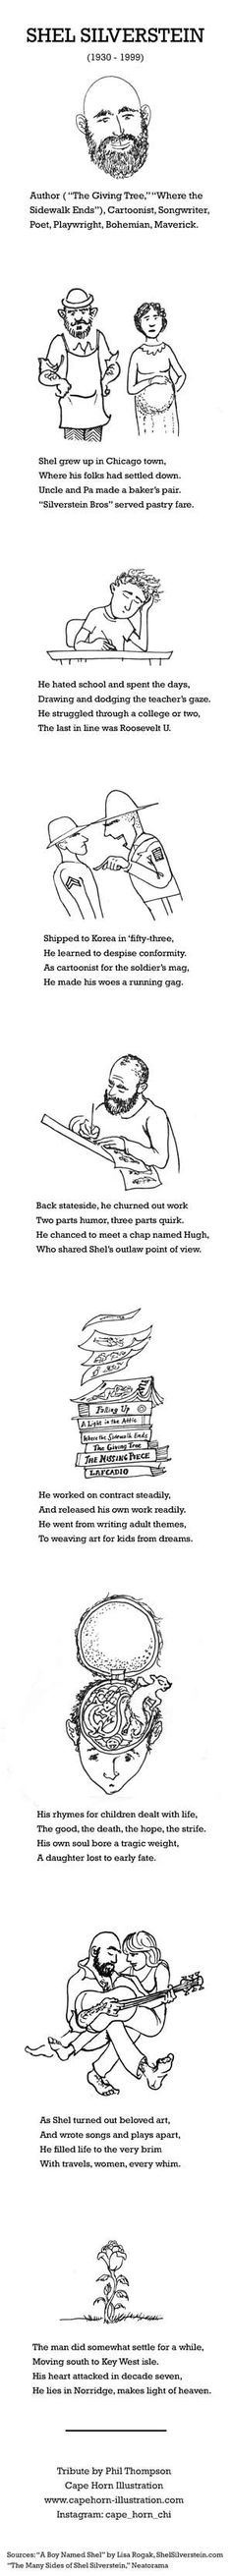 Shel Silverstein illustrated biography